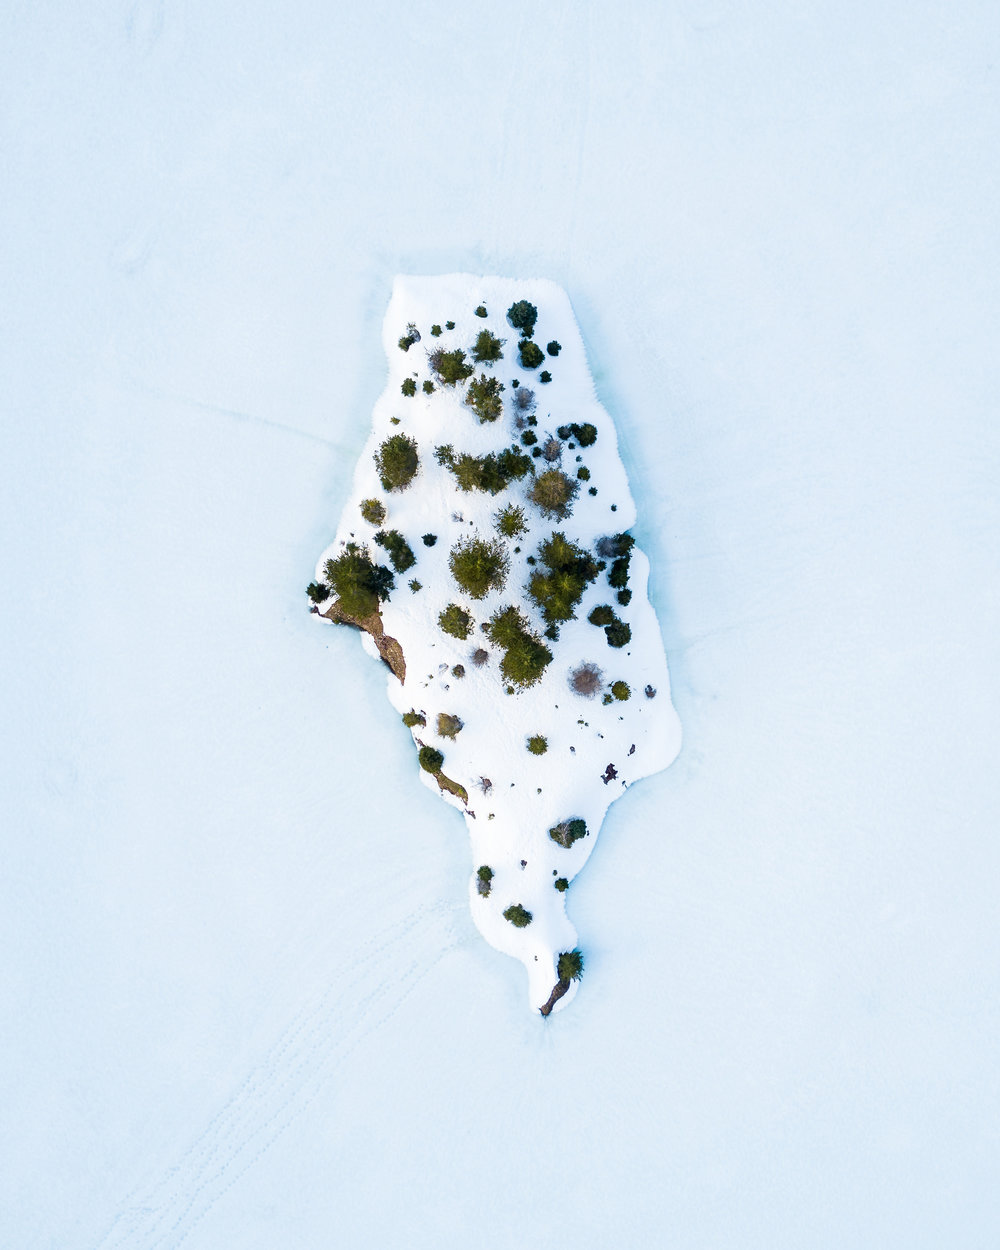 """Patches of vegetation poke through a snow-covered island on Gold Creek Pond, located in Kittitas County, Washington. During the 1970s, the pond and surrounding areas were one large gravel pit, which construction workers used in building the nearby Interstate 90 highway. The site was cleaned up in the early 1980s, revealing a picturesque mountain pond that is now surrounded by a popular hiking loop.  47°23'58.8""""N, 121°22'43.7""""W  Source imagery: John Westrock (@only_westrock)"""